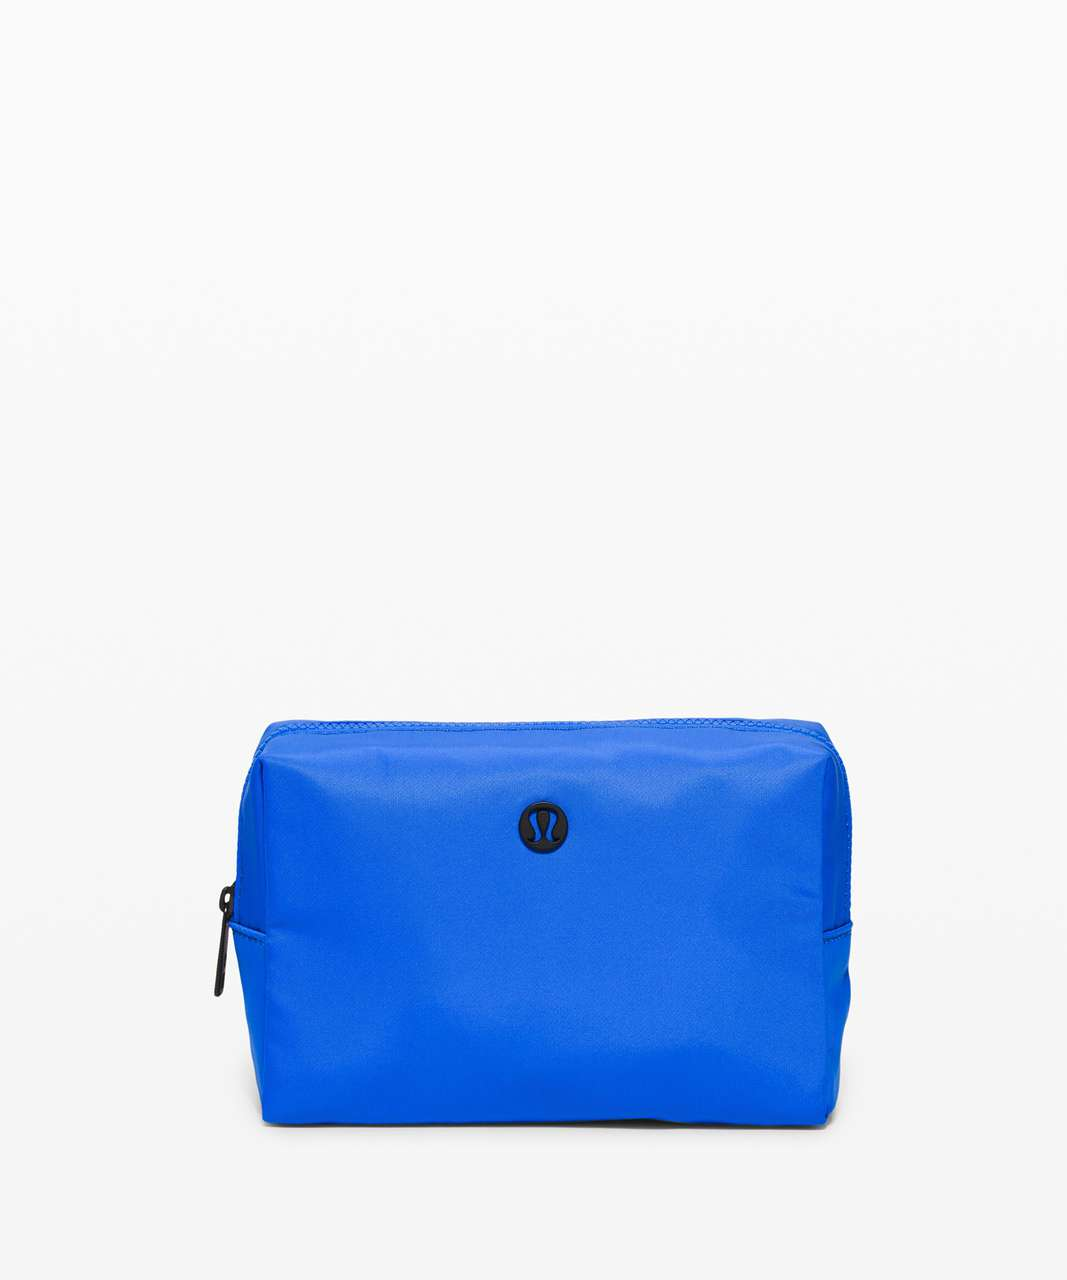 Lululemon All Your Small Things Pouch *Mini 2L - Wild Bluebell